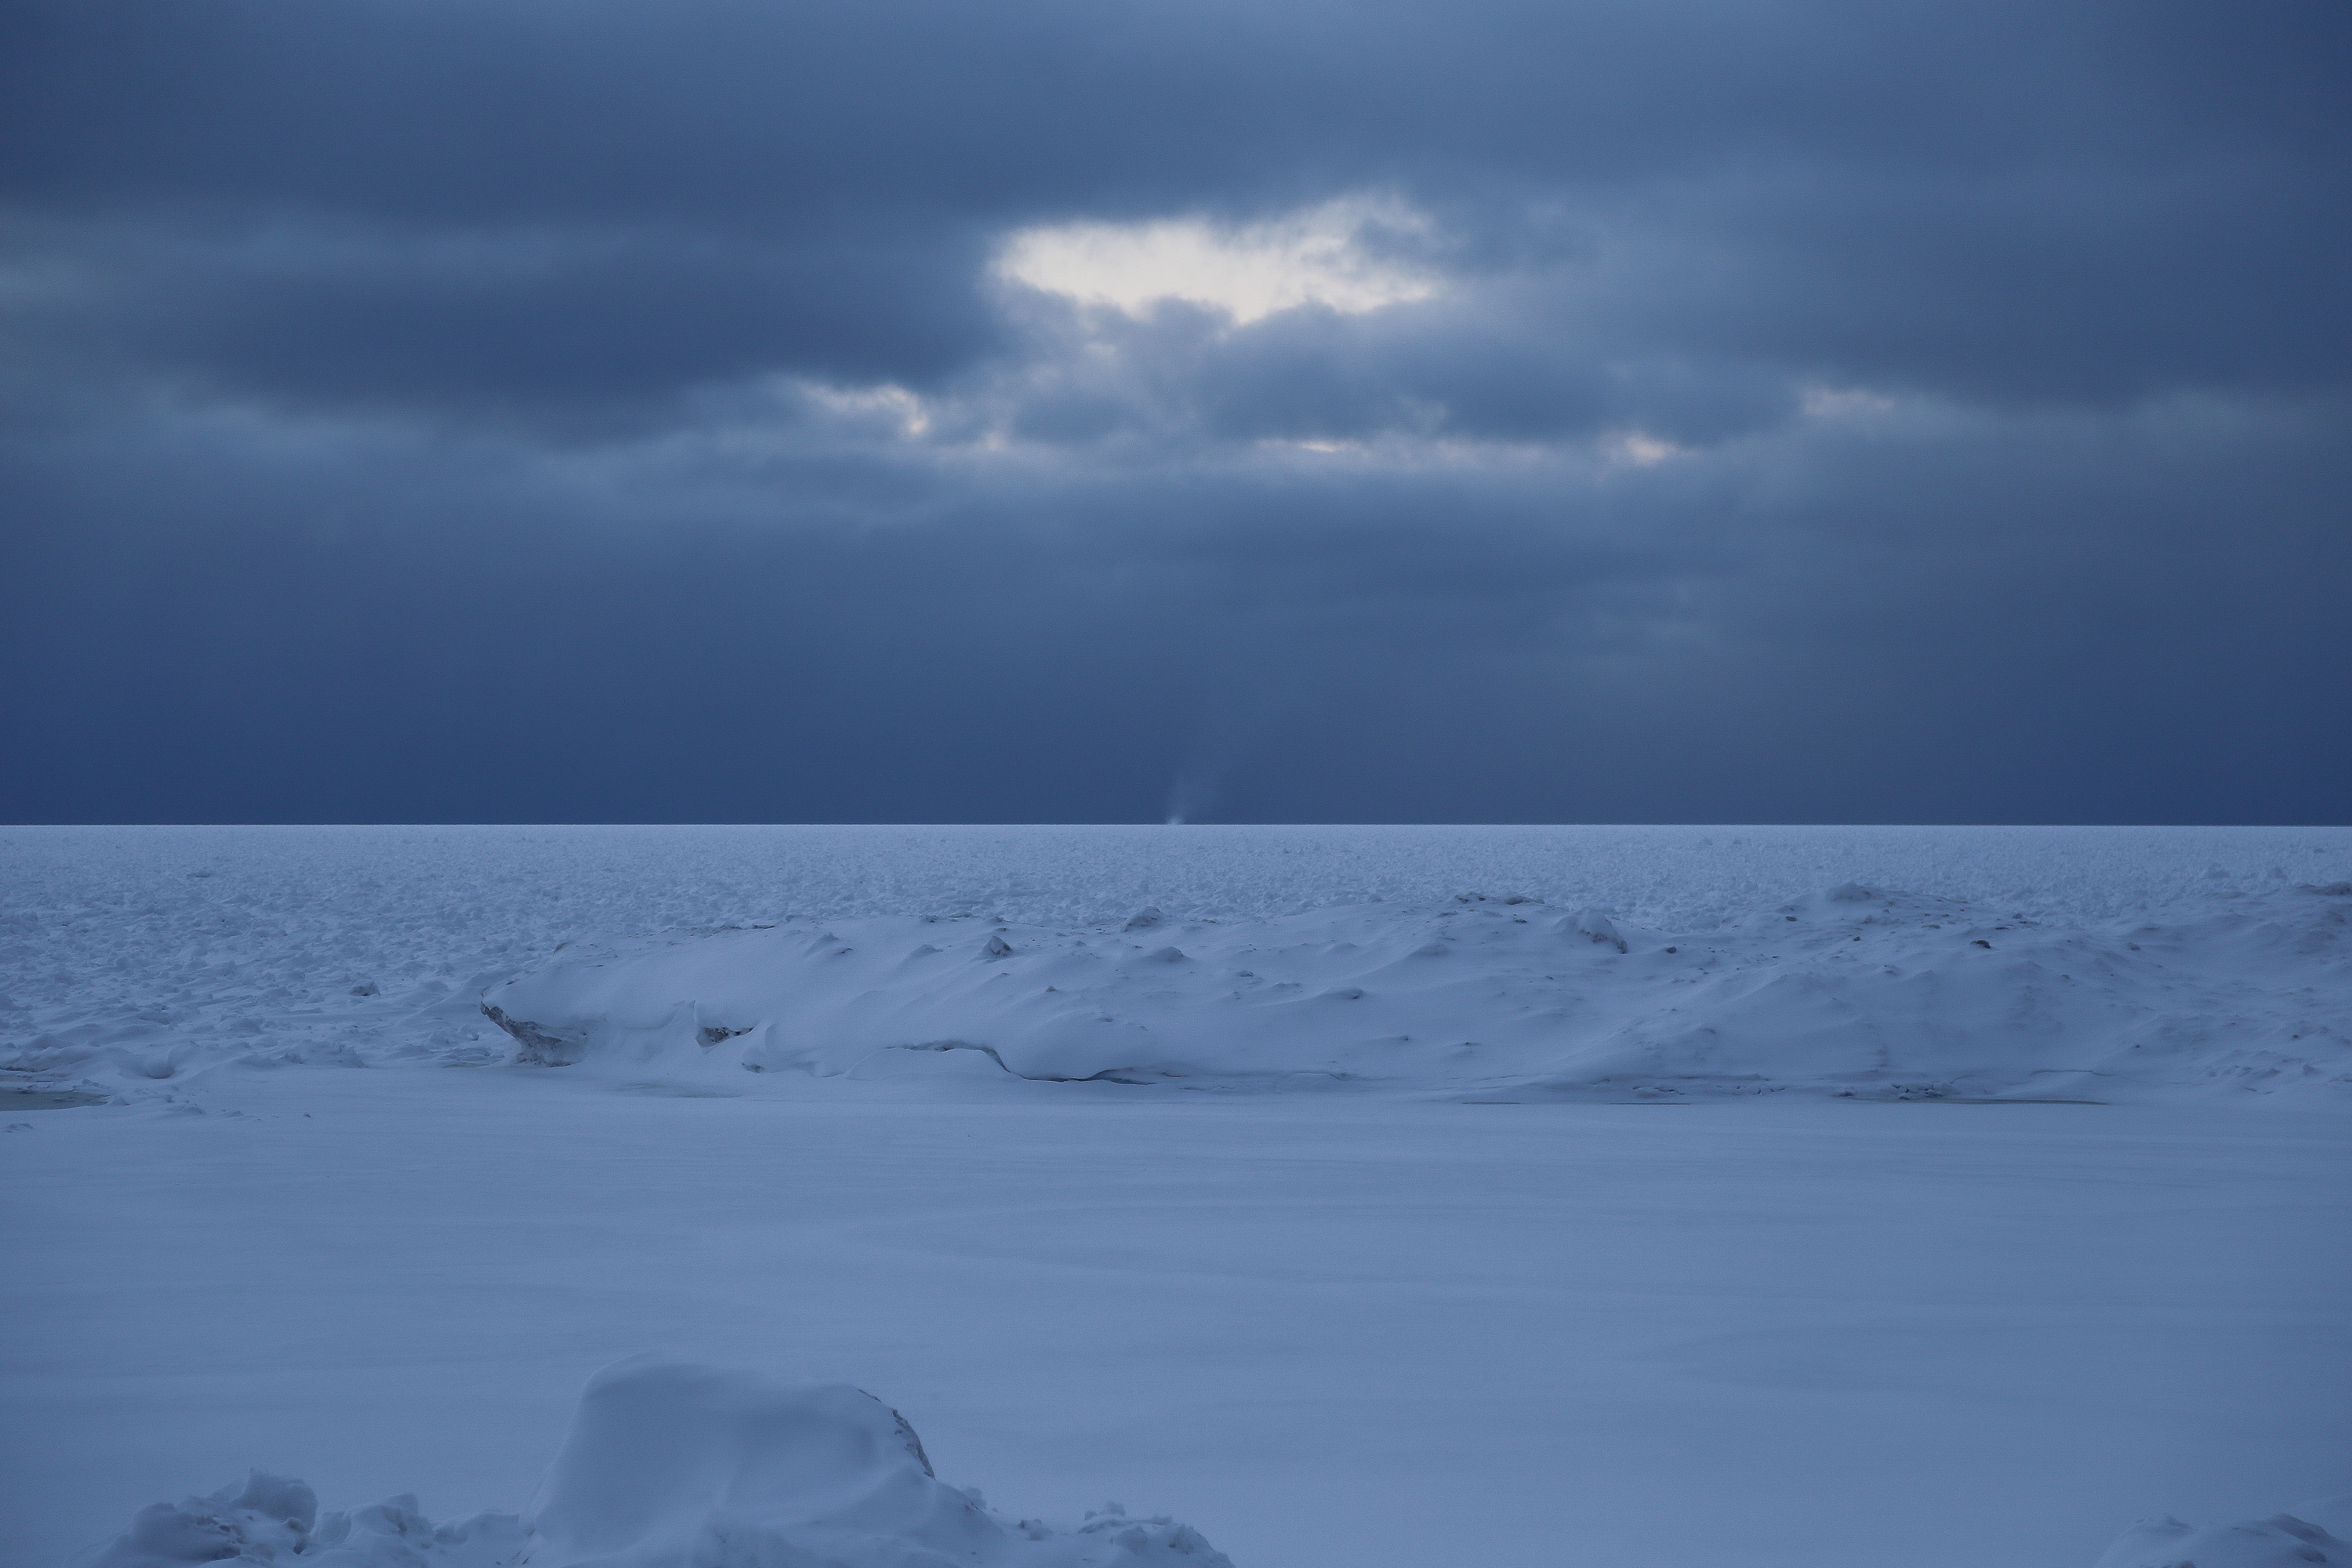 Landscape winter photography of snow, ice, and a snow tornado off in the distance at Agate Beach, located in Toivola, Michigan.